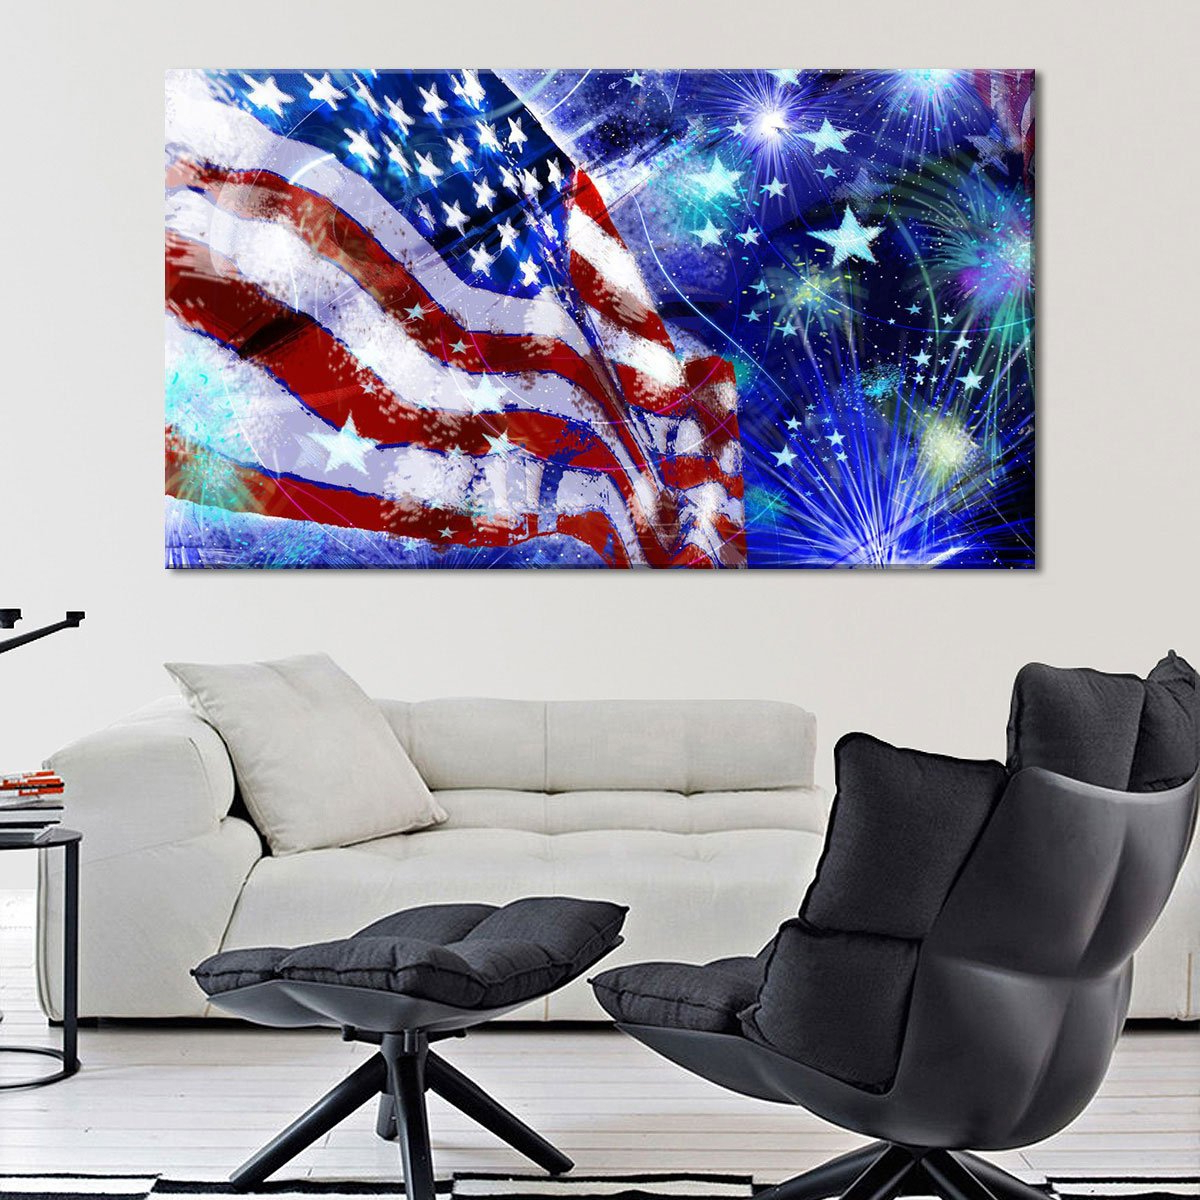 Best And Newest American Flag 3D Wall Decor Within Festaprint Extra Large Wall Art Printing For Home Decor Red White (View 14 of 20)